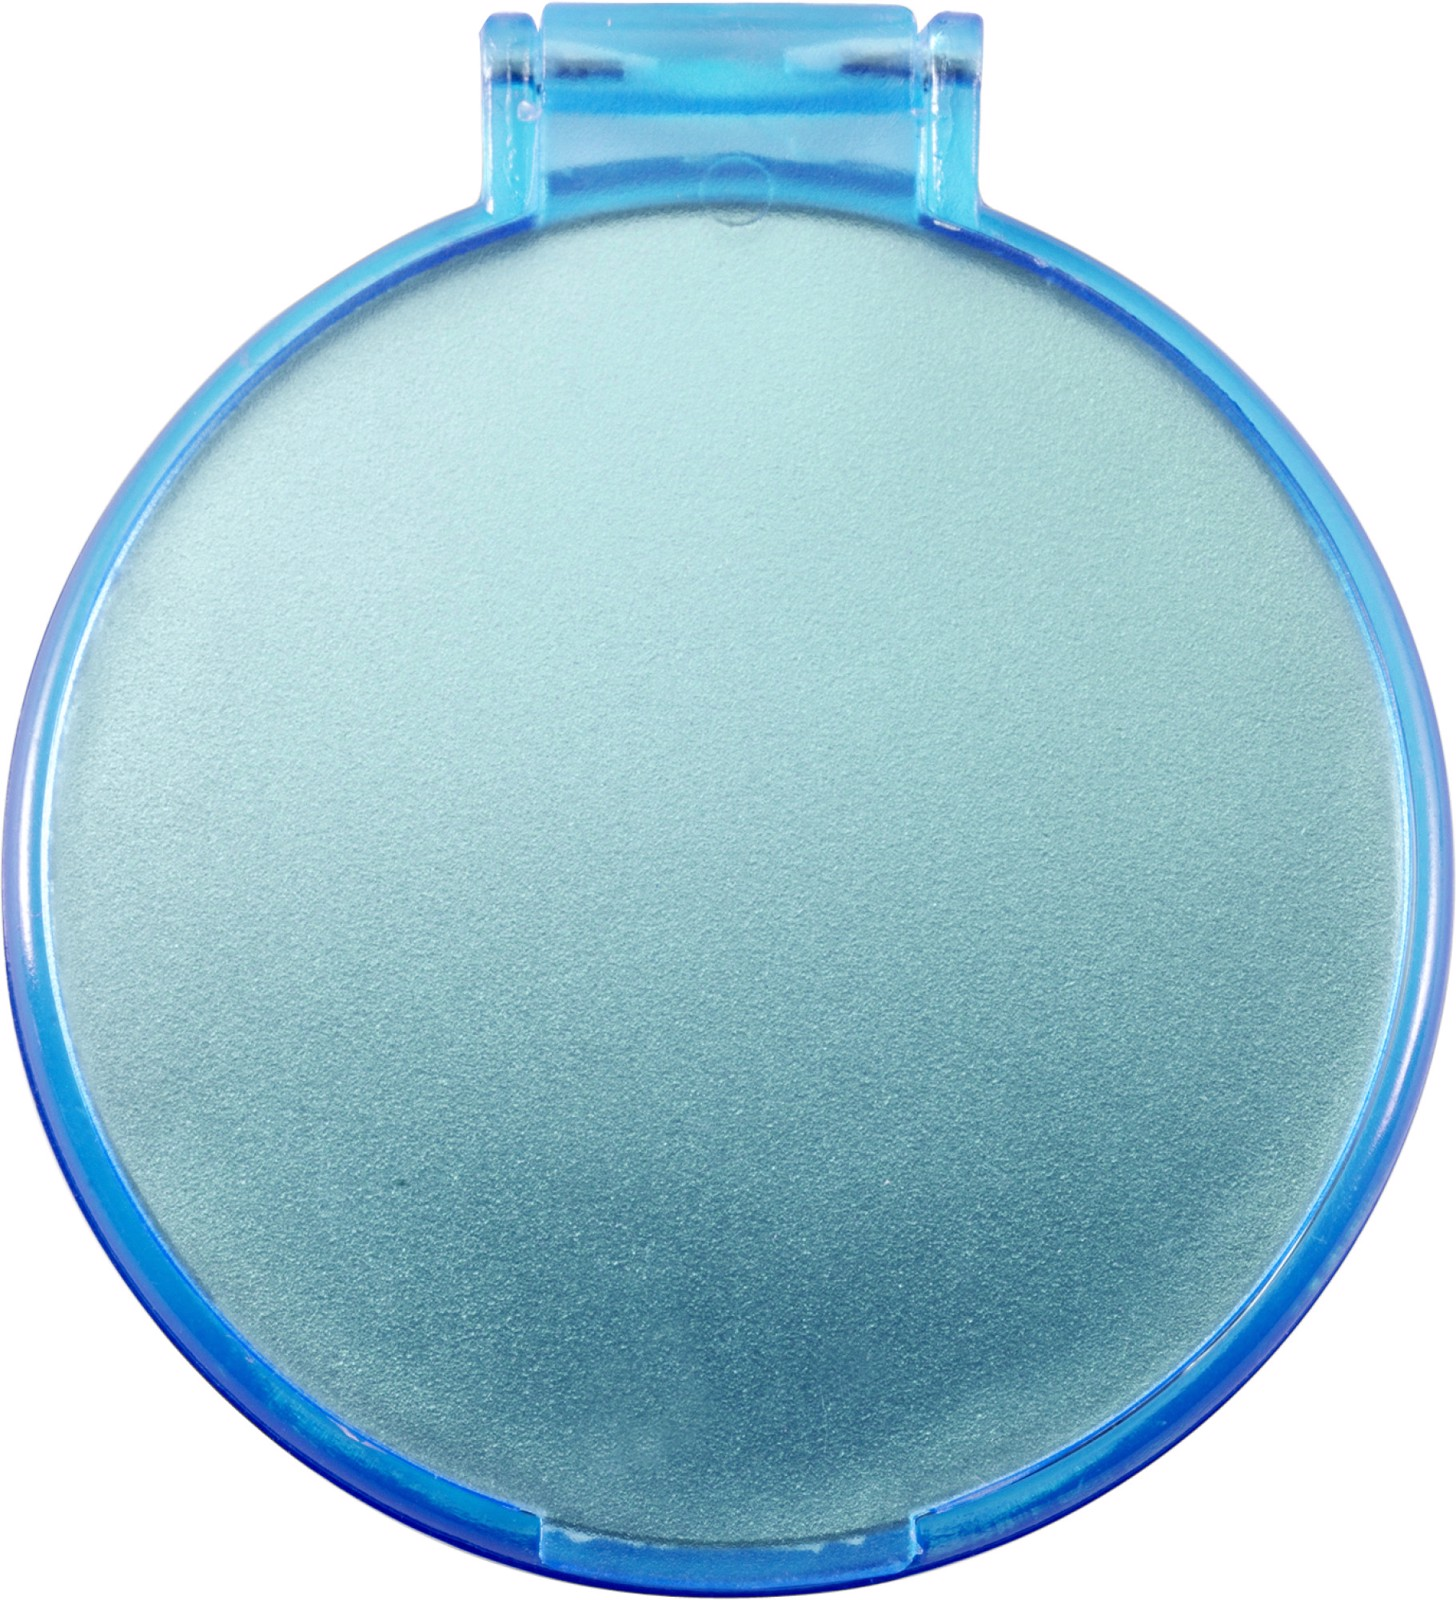 PS pocket mirror - Light Blue